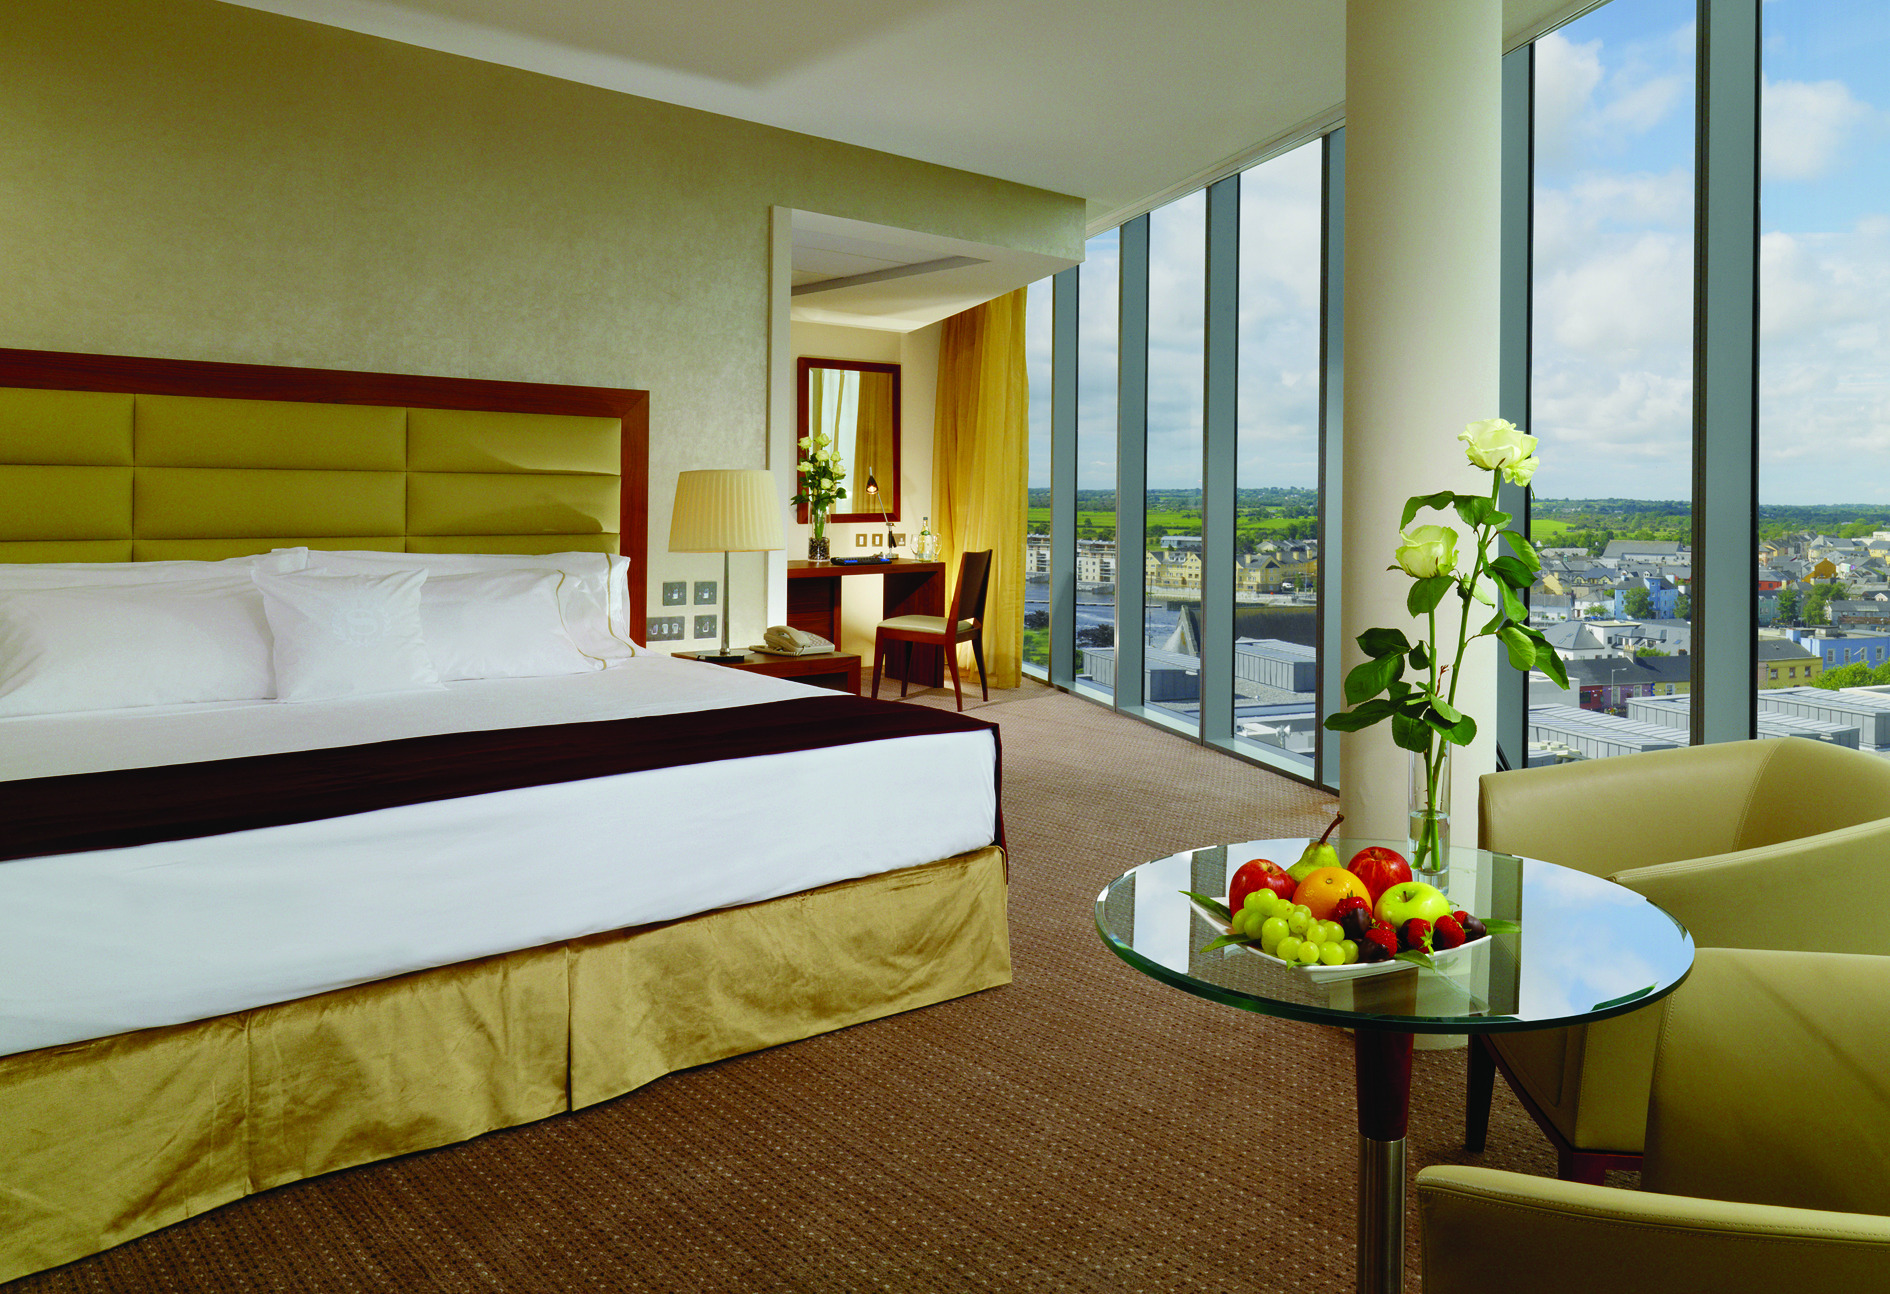 Things to do in County Westmeath, Ireland - Sheraton Athlone Hotel - Deluxe Tower Room at Sheraton - YourDaysOut - Photo 5